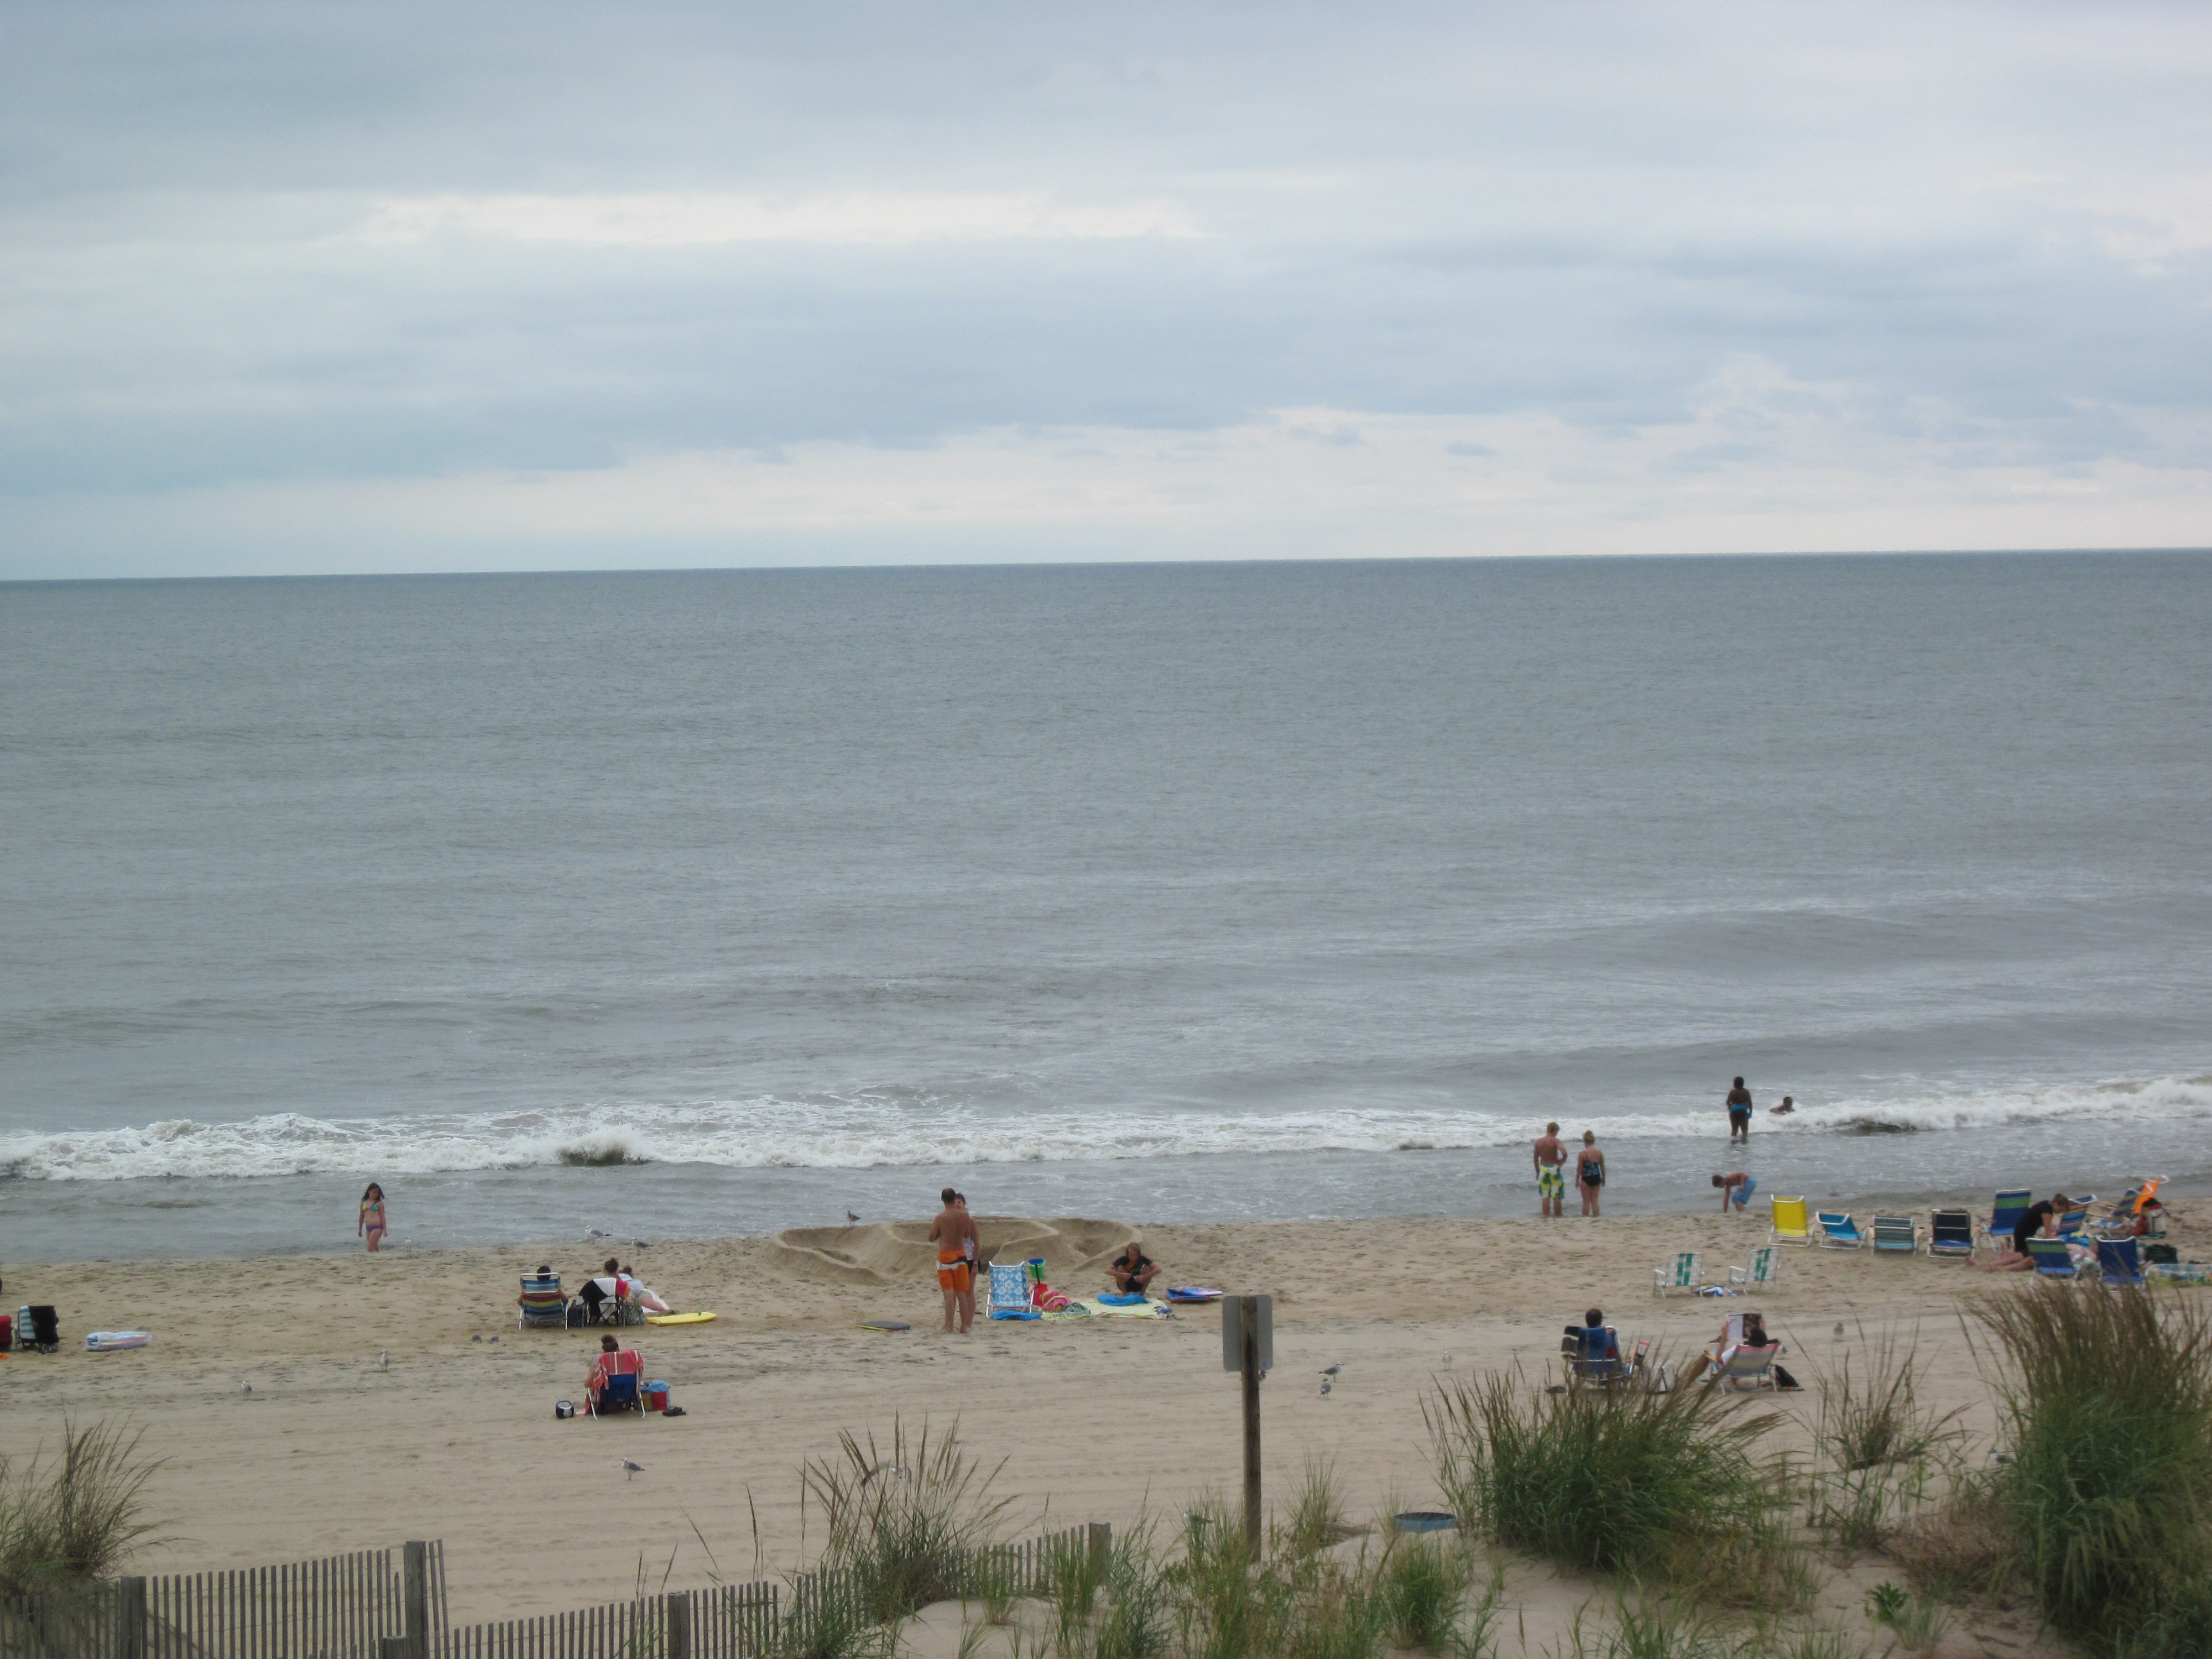 Delmarva beaches expect crowds for Memorial Day